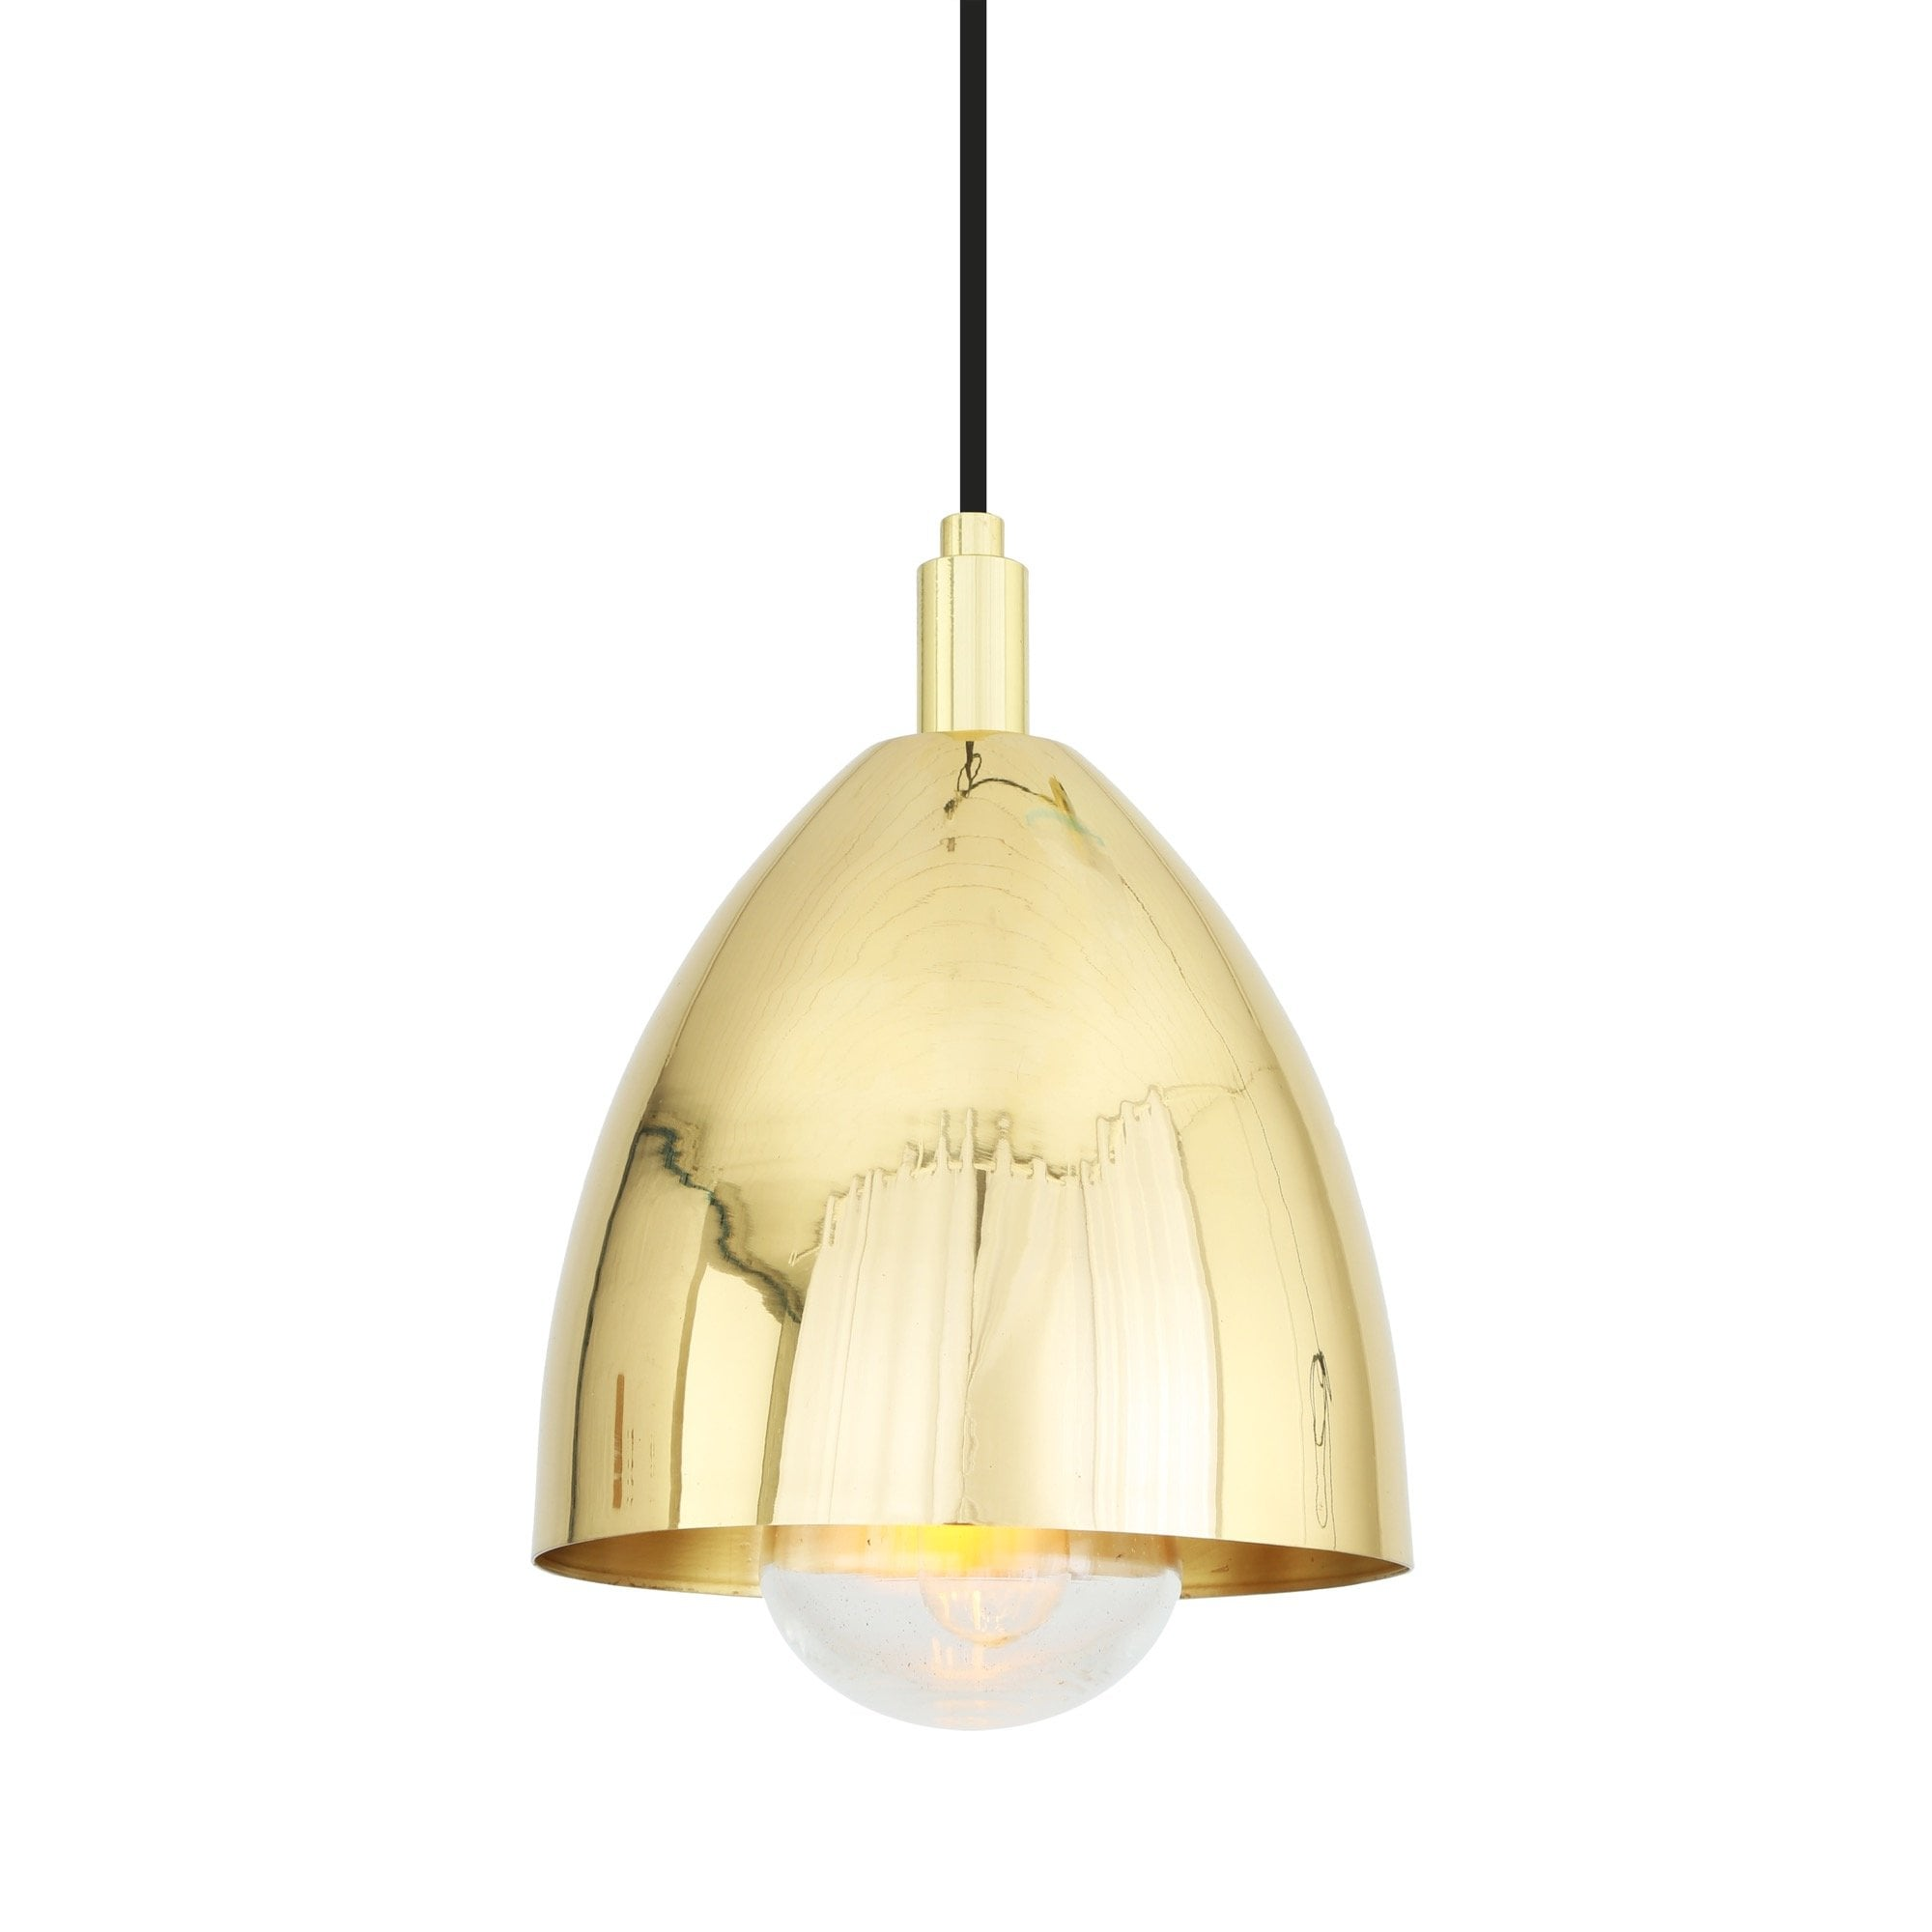 Polished Brass Bathroom Ceiling Pendant Light Lighting Company